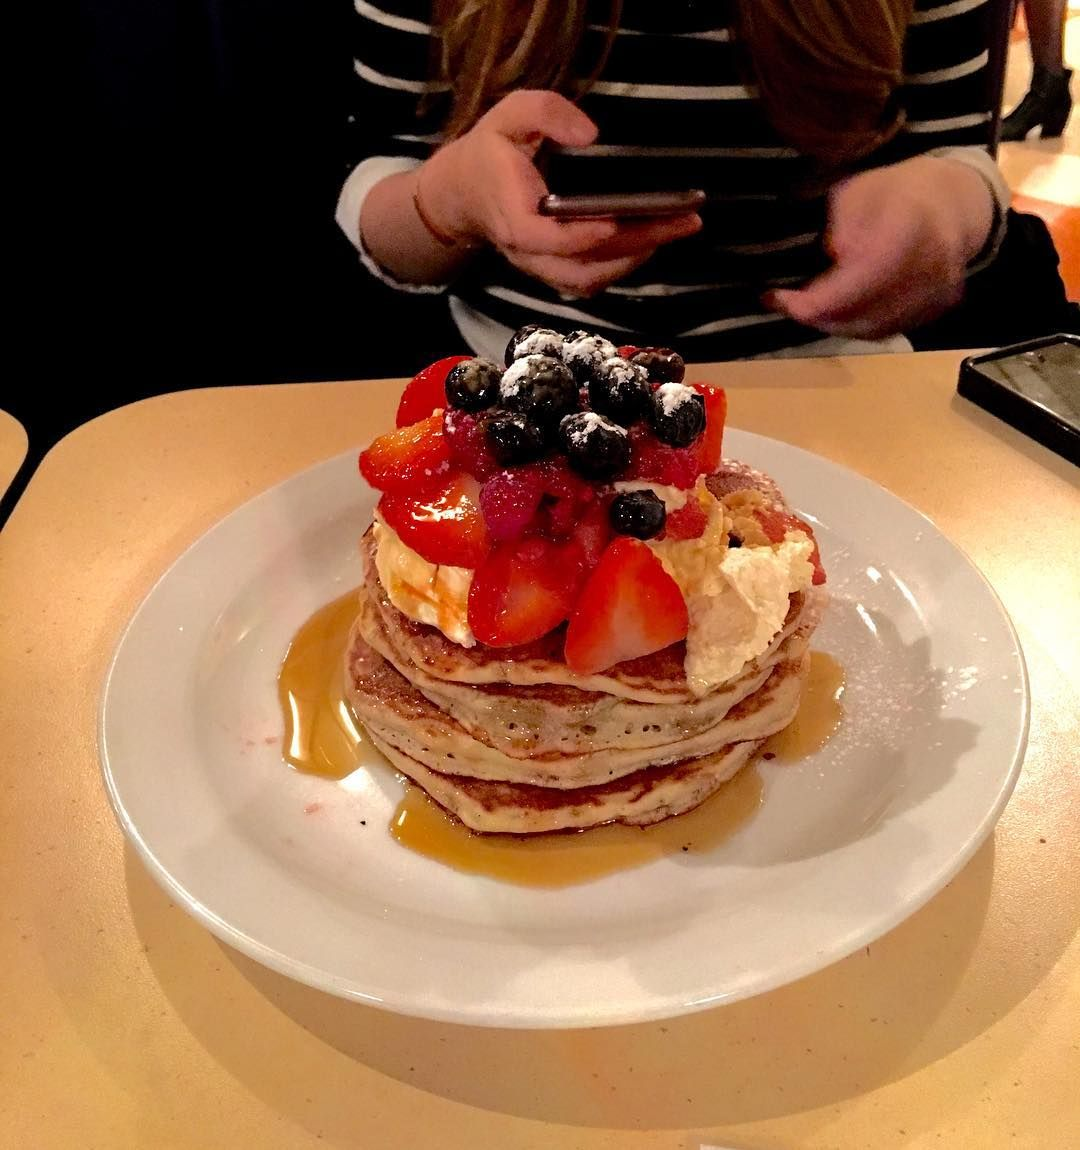 It's #Pancakes #Day tomorrow! #MrFD will be making the most of it with a visit to #CoventGarden to one of the best #Pancake places in #London!  #picoftheday #food #foodporn #foodie #instafood #instagram #instagood #iphone #date #datenight #girl #fruit #eat #cleaneating #eatclean #cheatday #american #city #breakfast #breakfastclub by mrfinedining